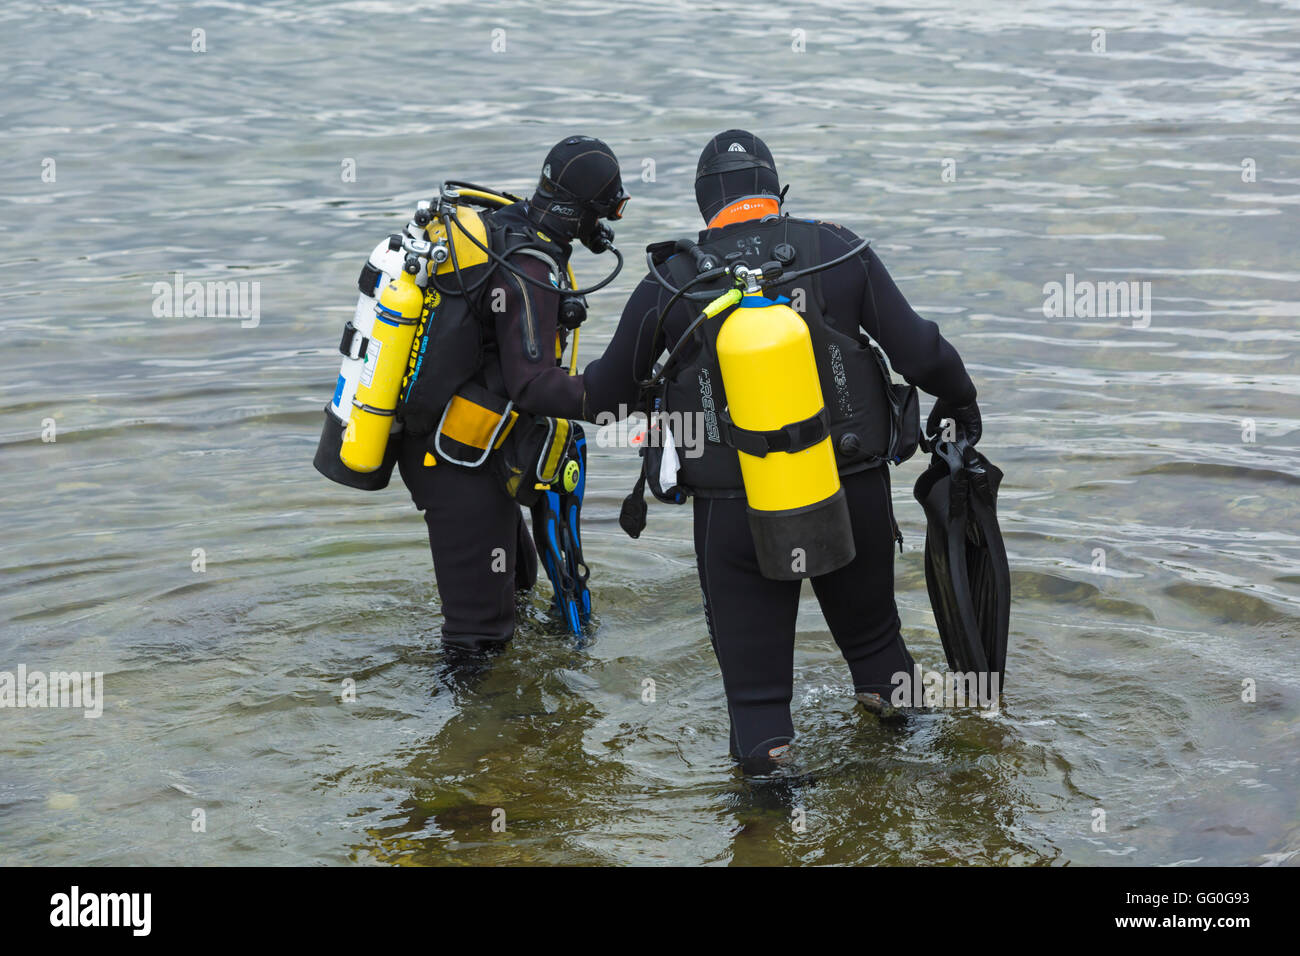 Two Scuba divers in the sea at Swanage in July - Stock Image